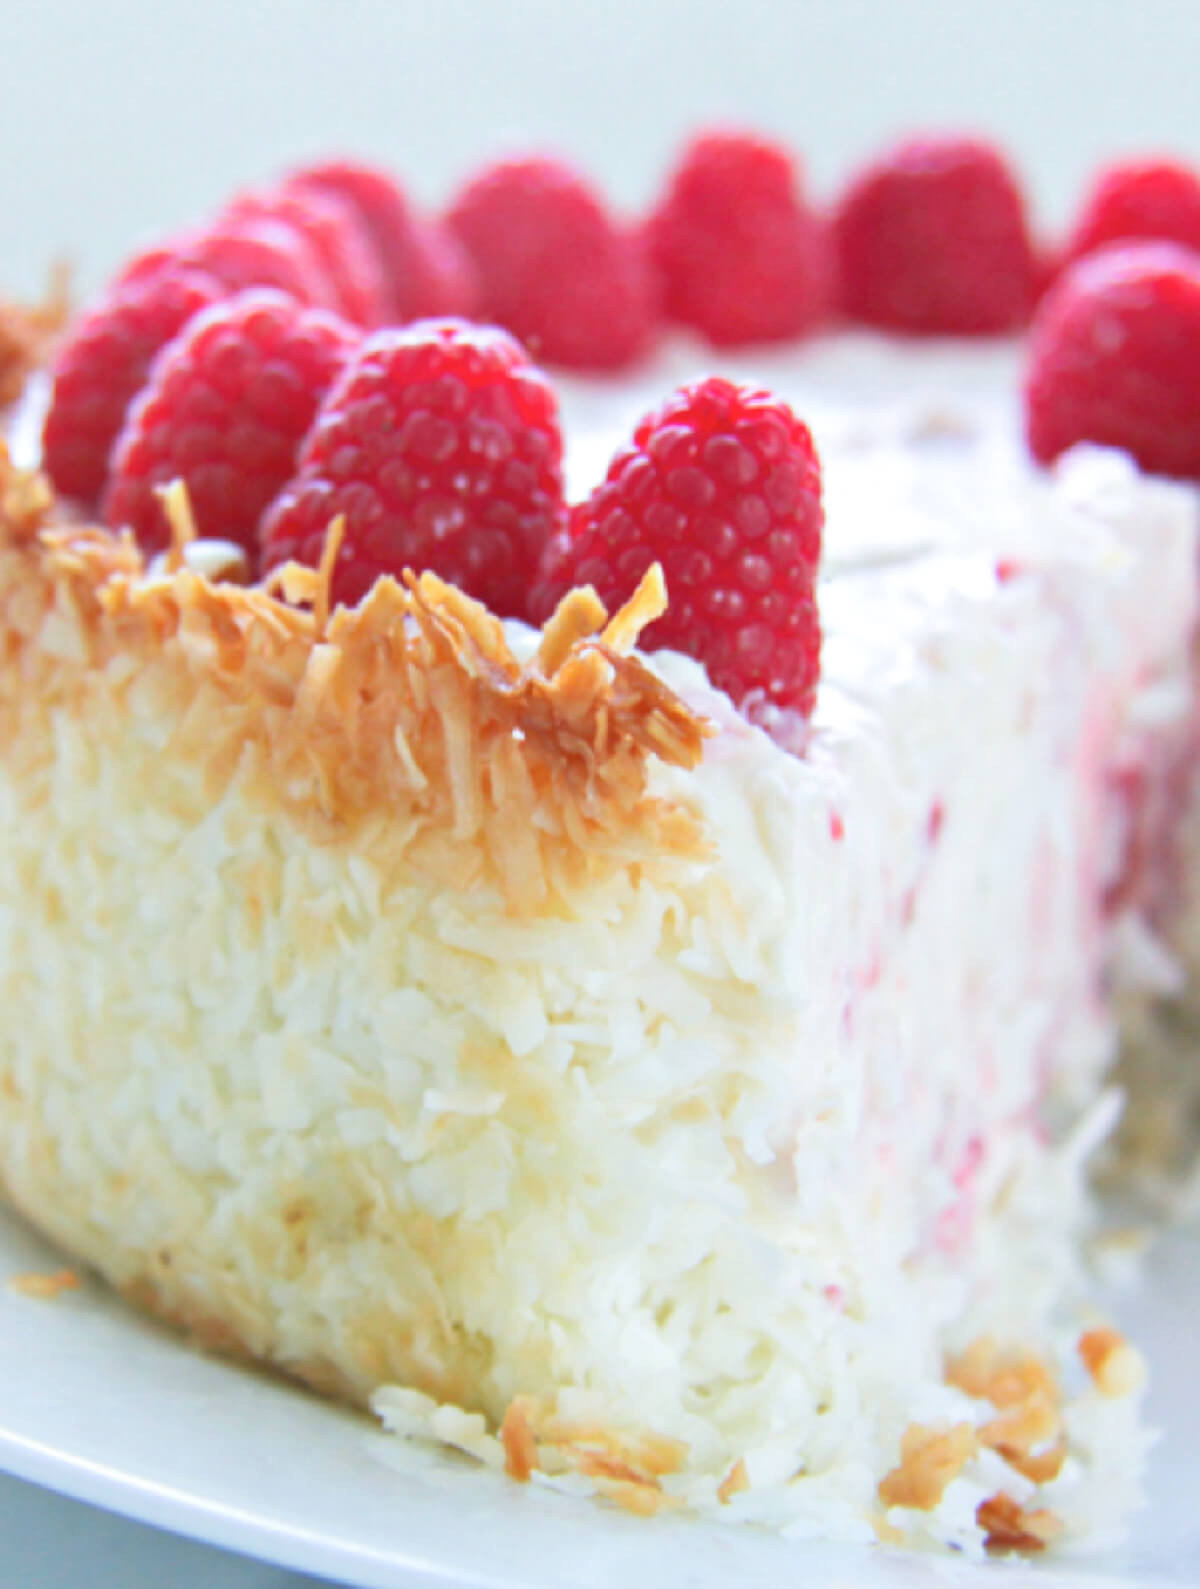 Keto Cheesecake Recipe  Keto Raspberry Cheesecake with Coconut Crust